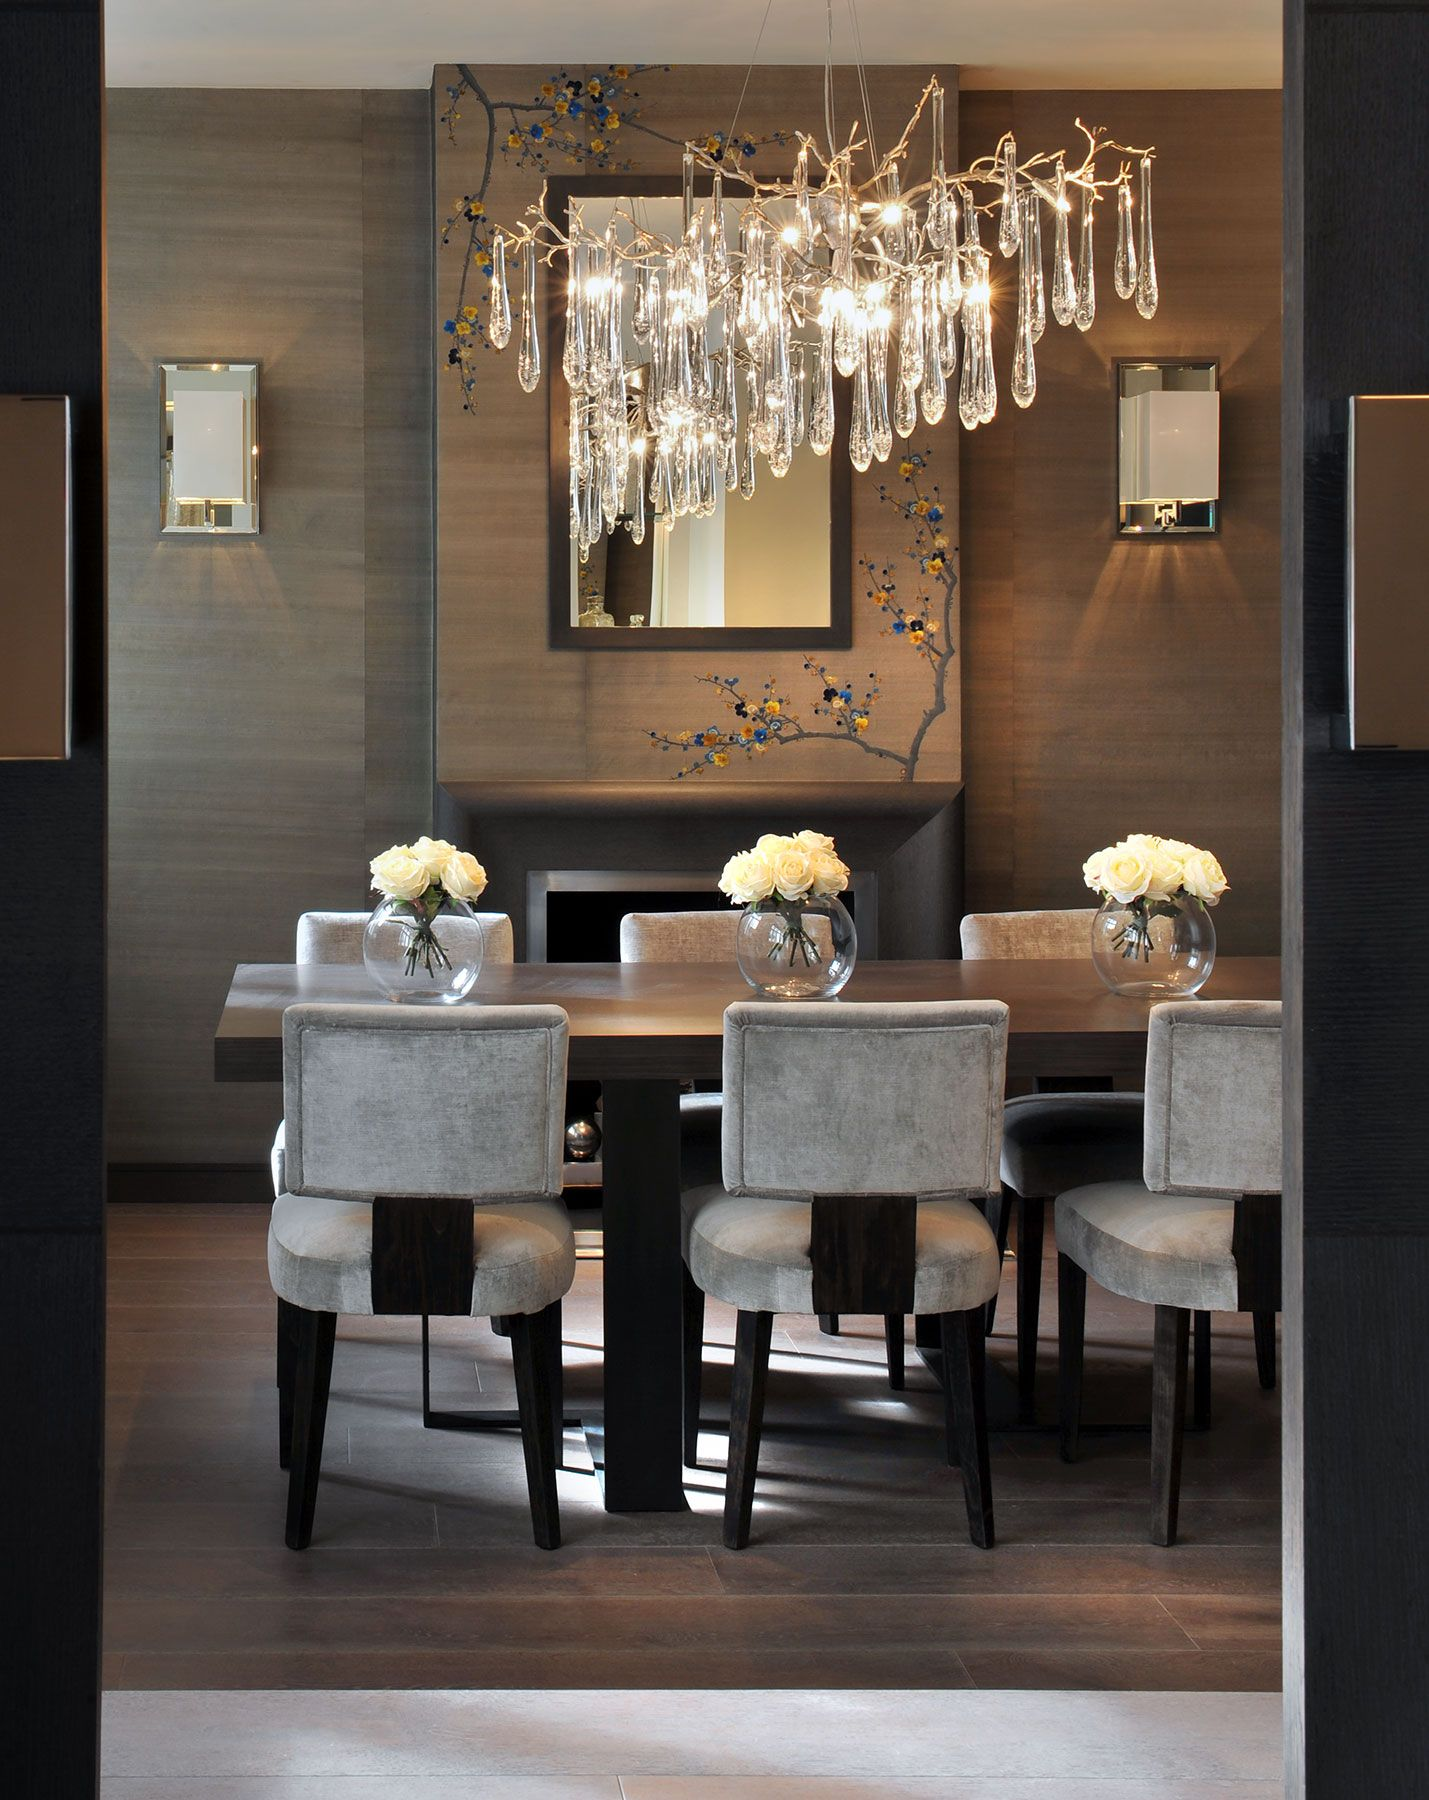 The Best Luxury Chandeliers for Your Living Room   Luxury ... on Living Room Wall Sconce Ideas For Dining Area id=73623